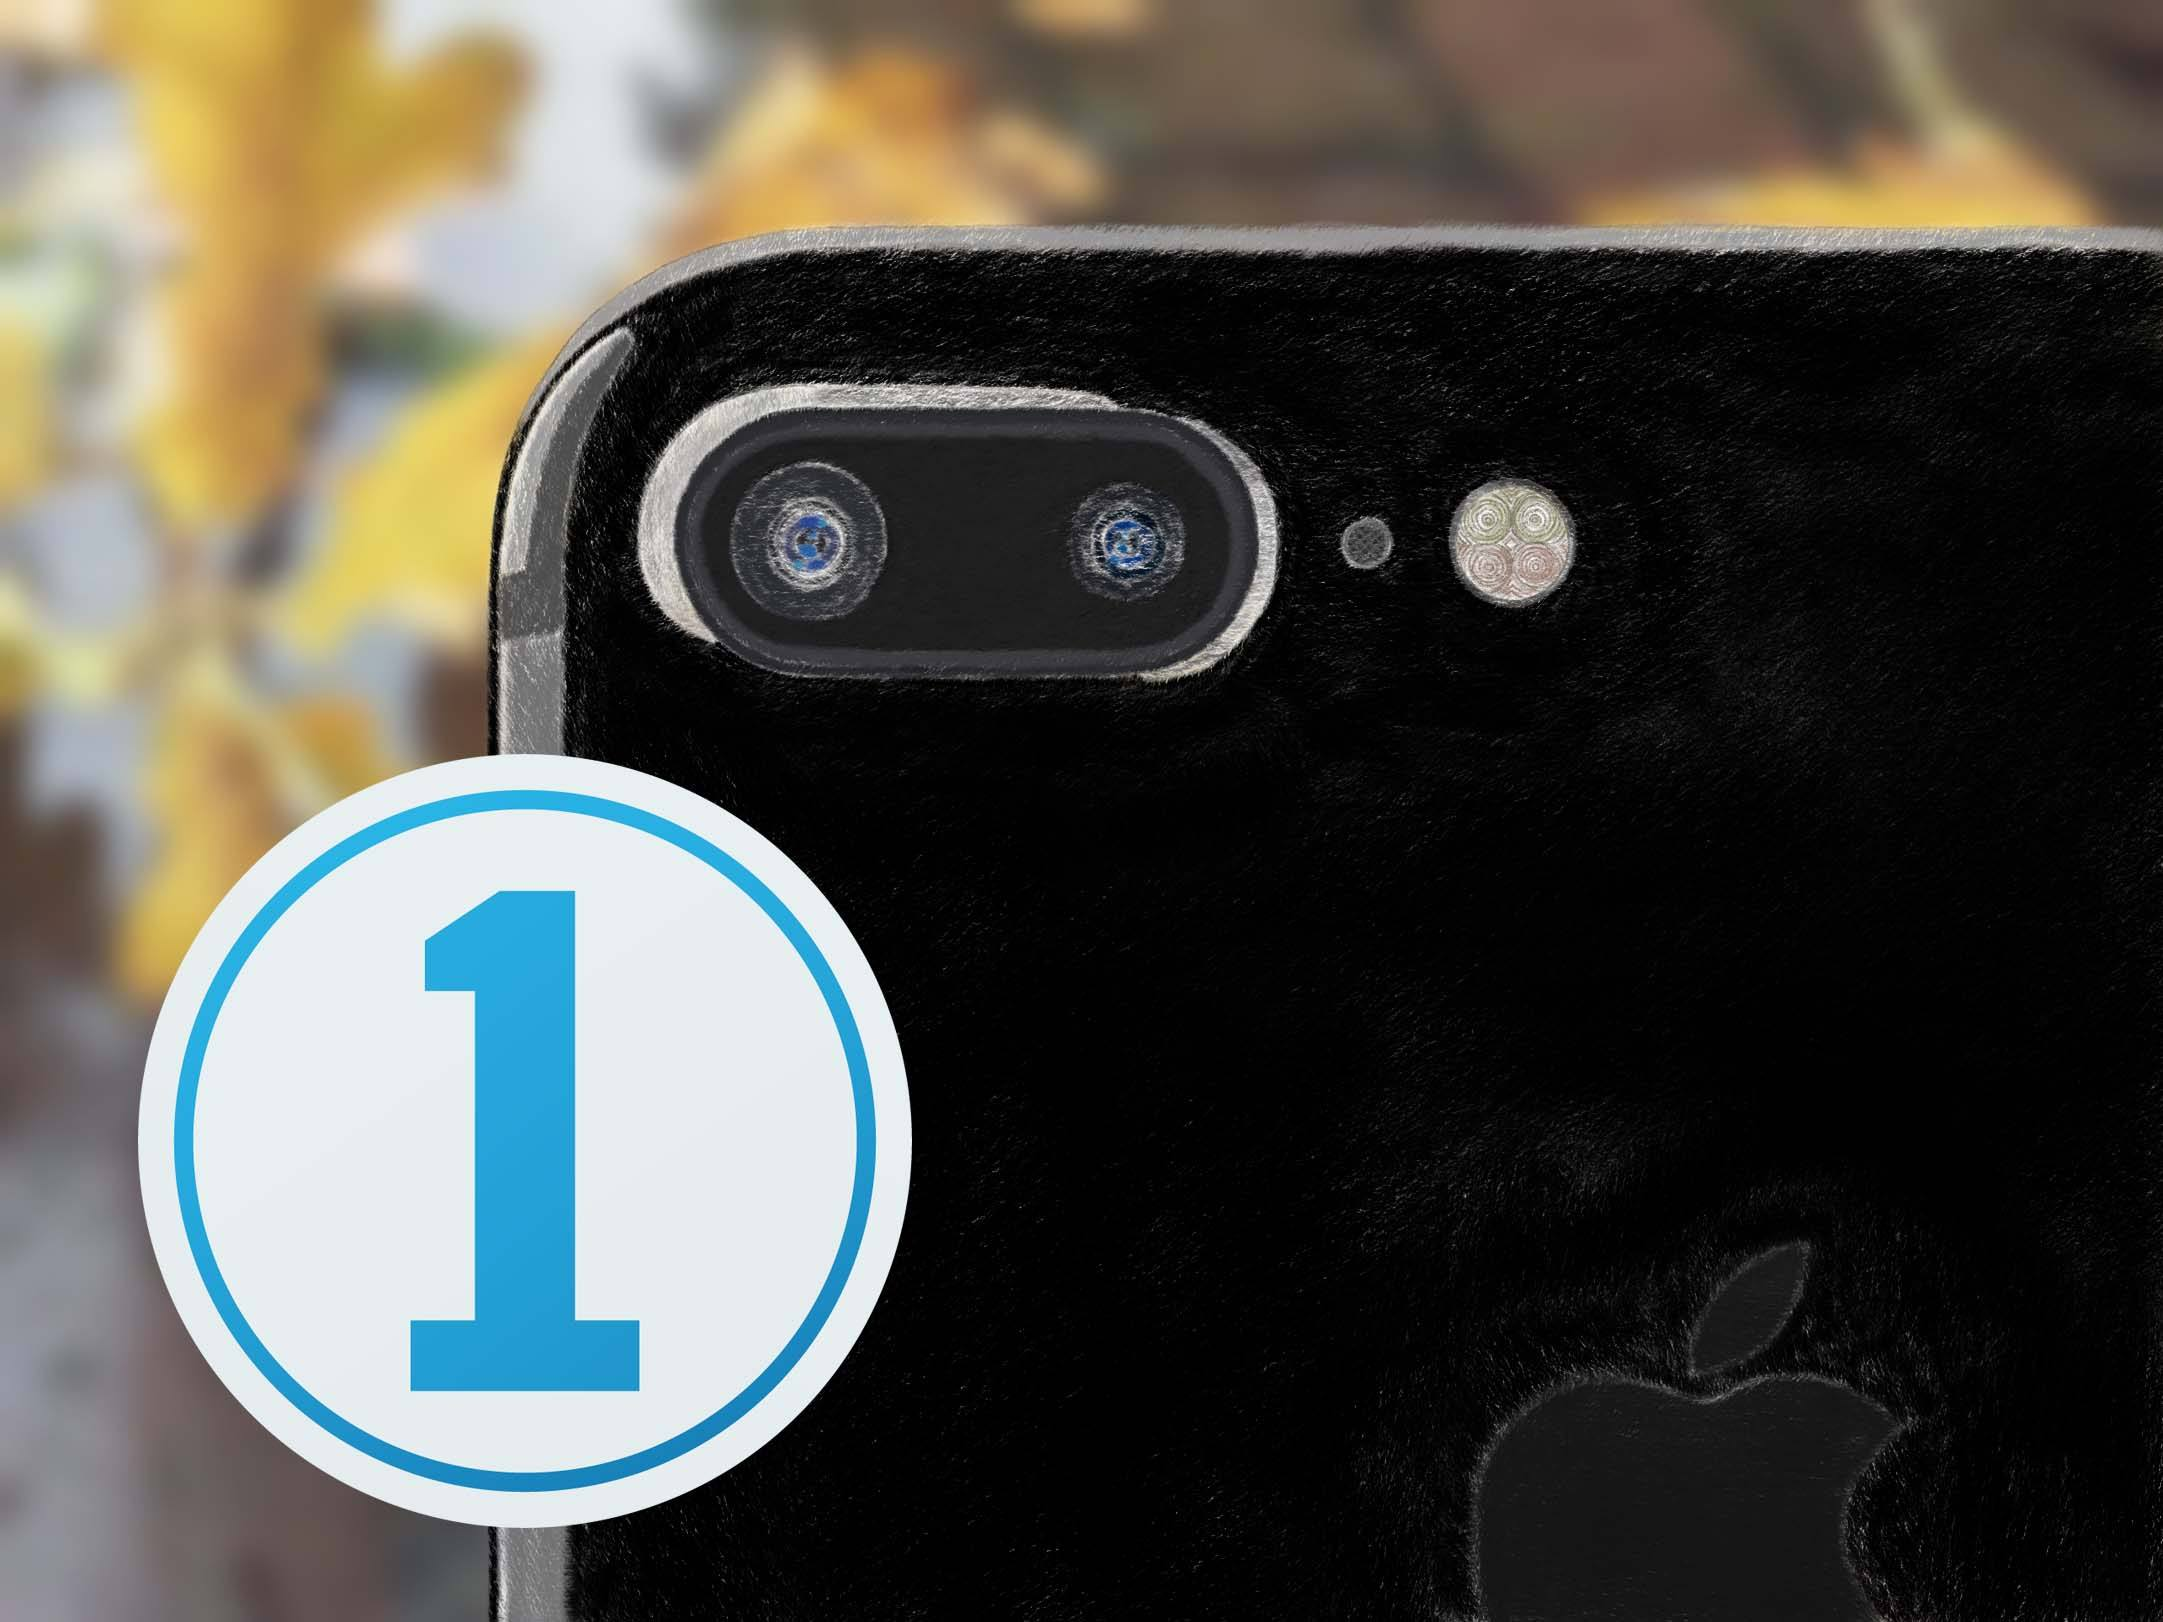 iPhone 7 Plus, capture one 10 logo